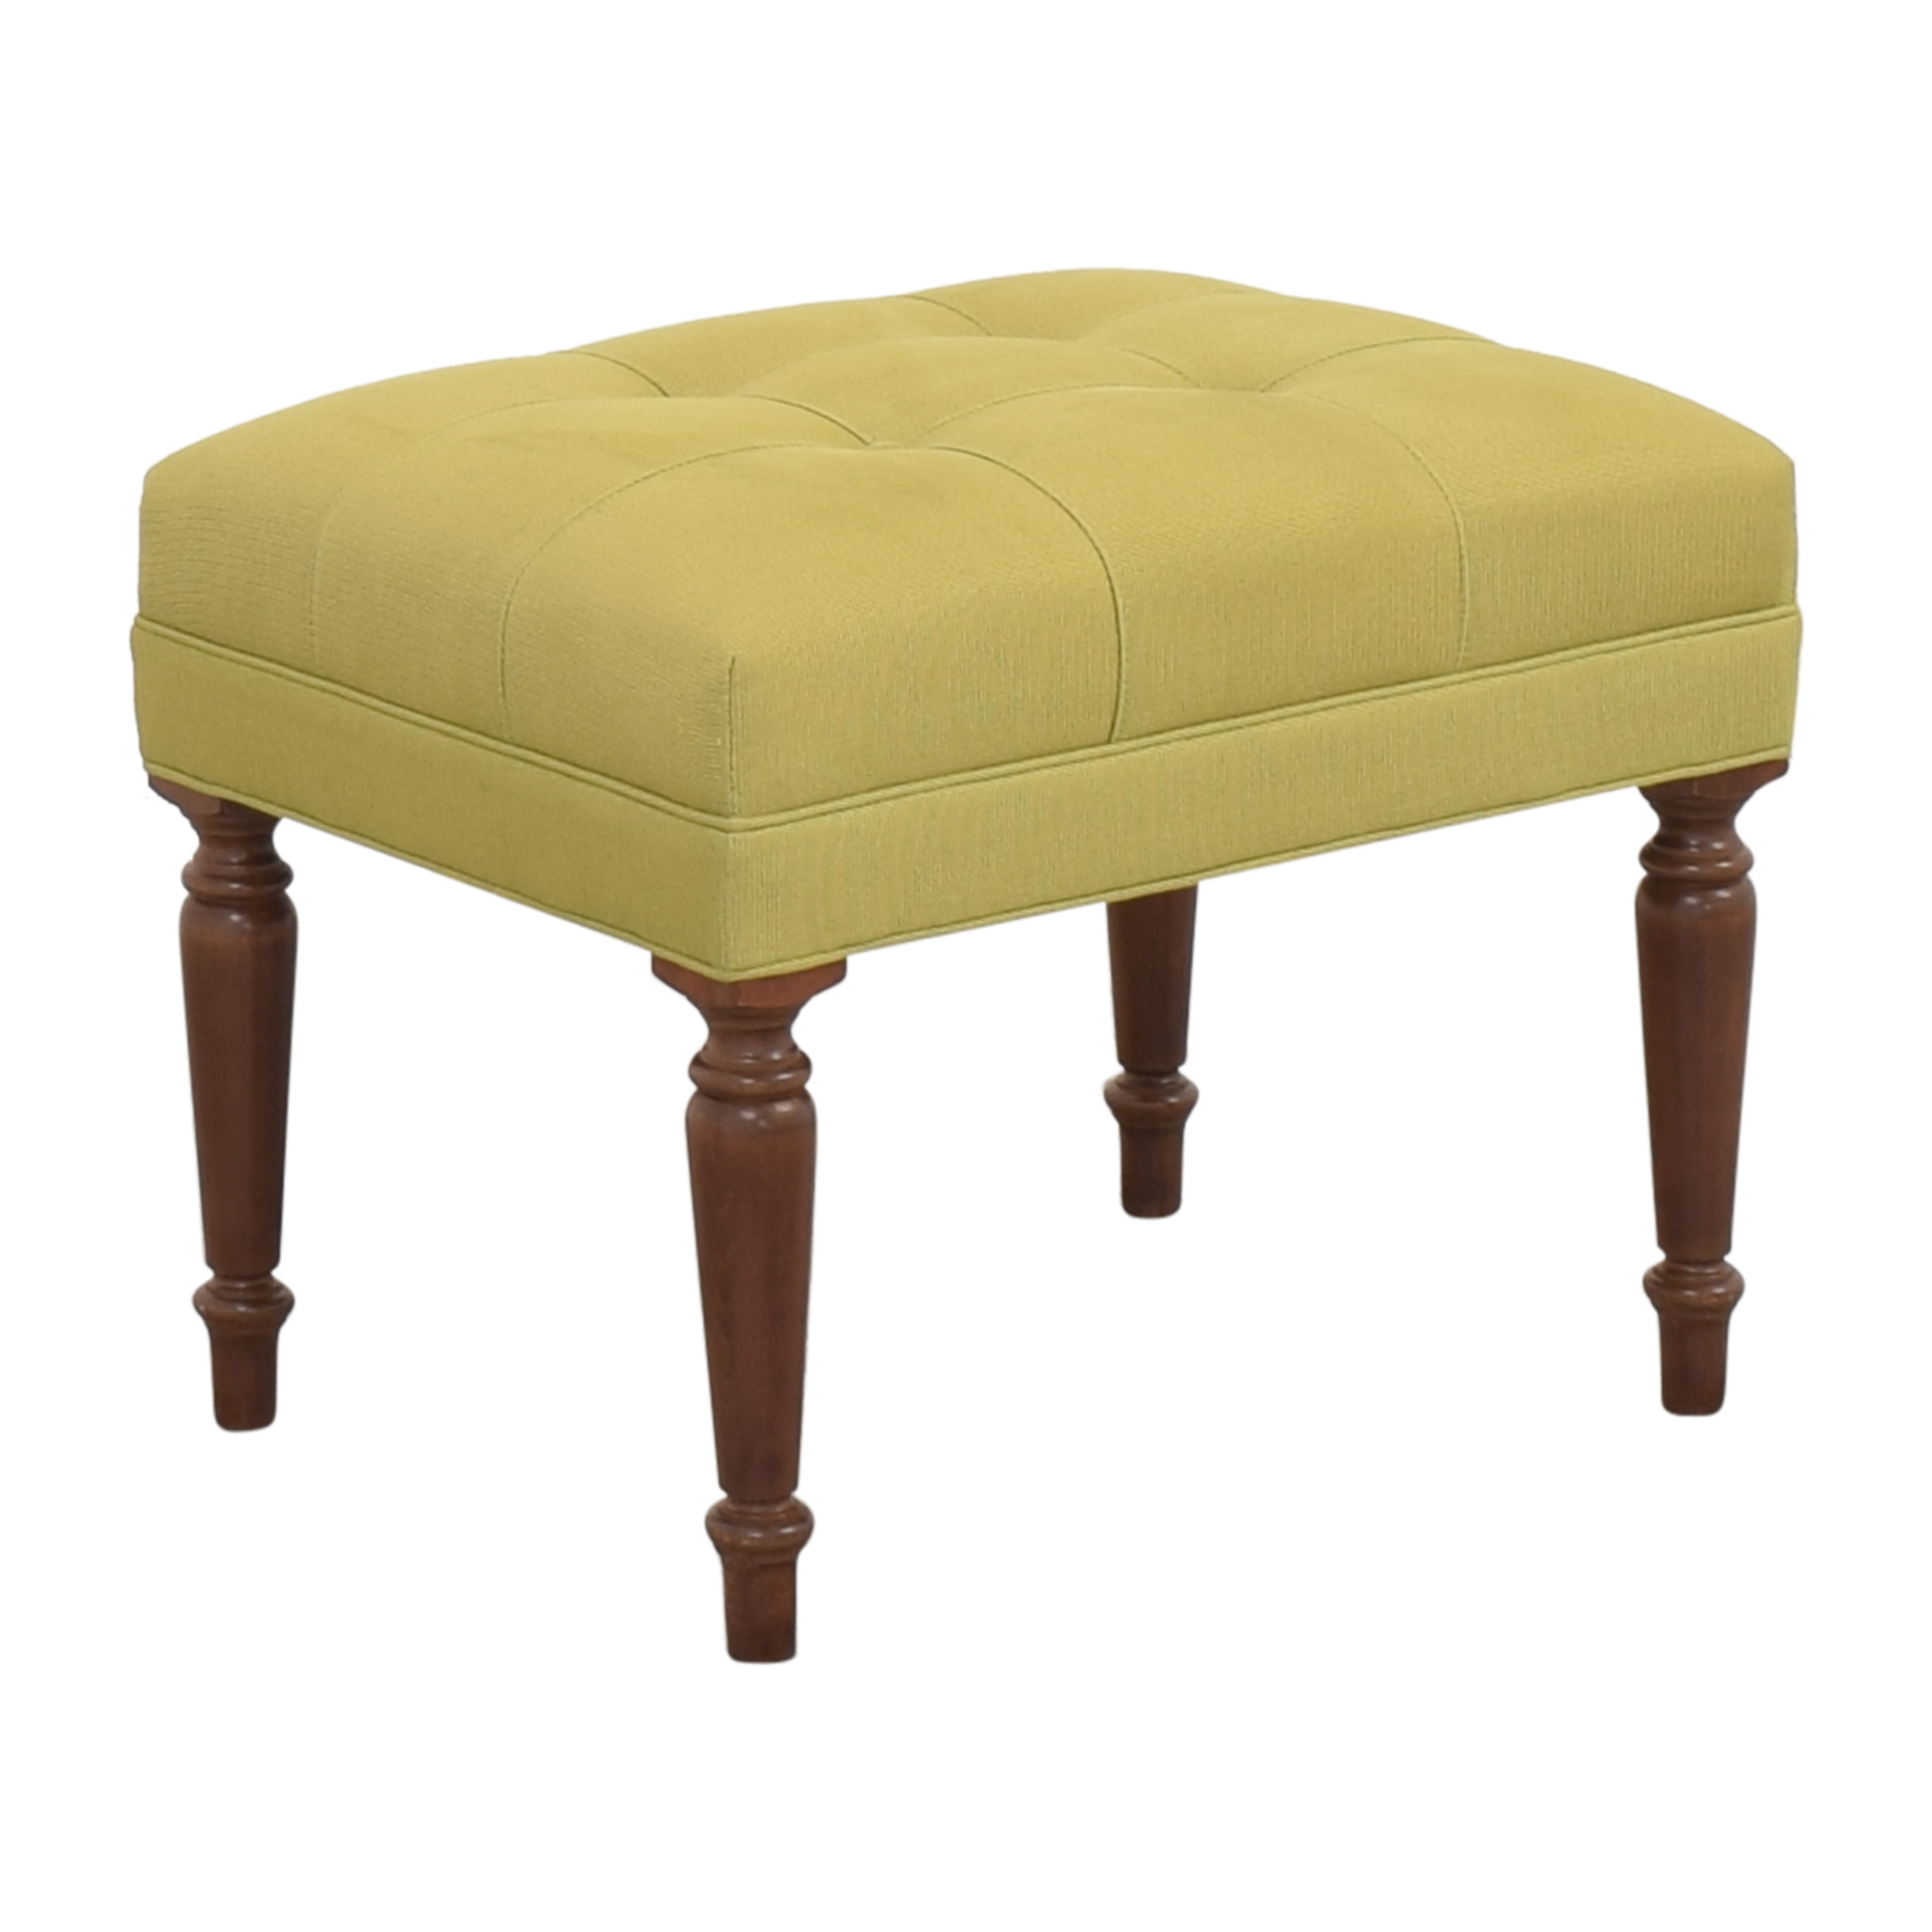 Ethan Allen Upholstered Ottoman / Chairs